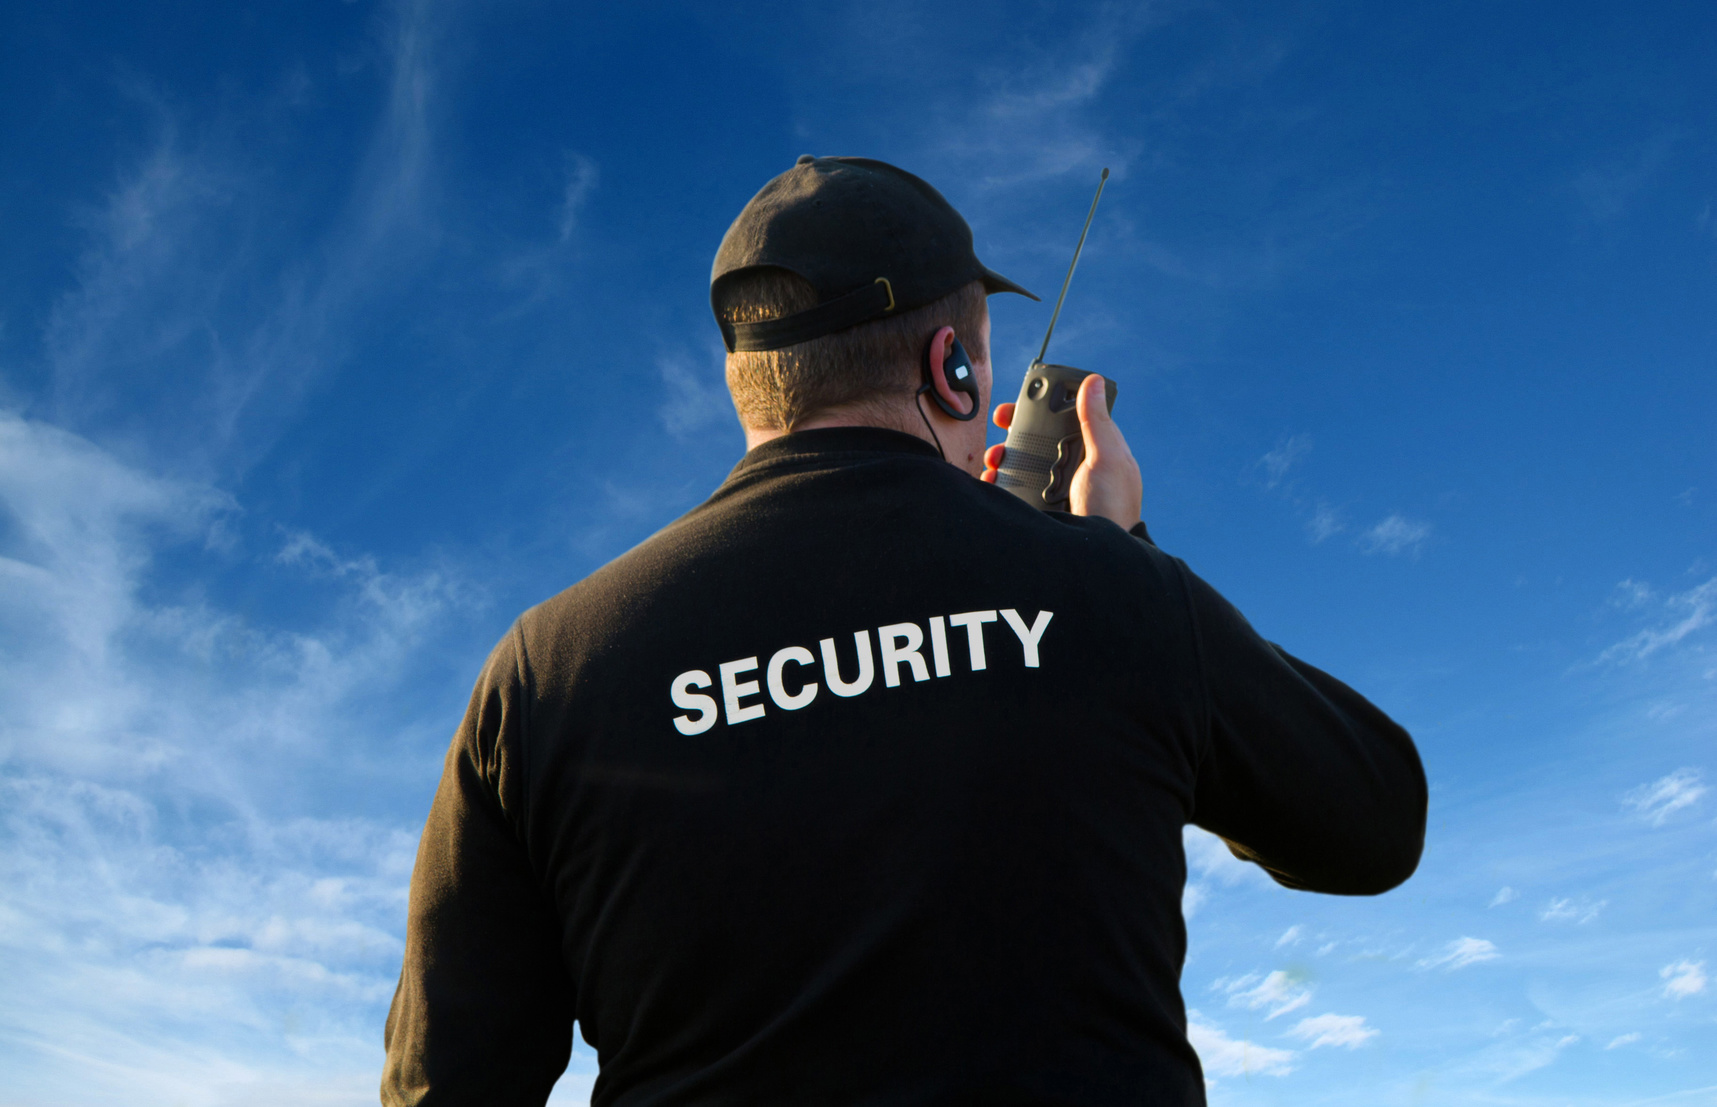 Potential-Security-1_The-Main-Responsibilities-of-Private-Security-Guards_Image.jpg